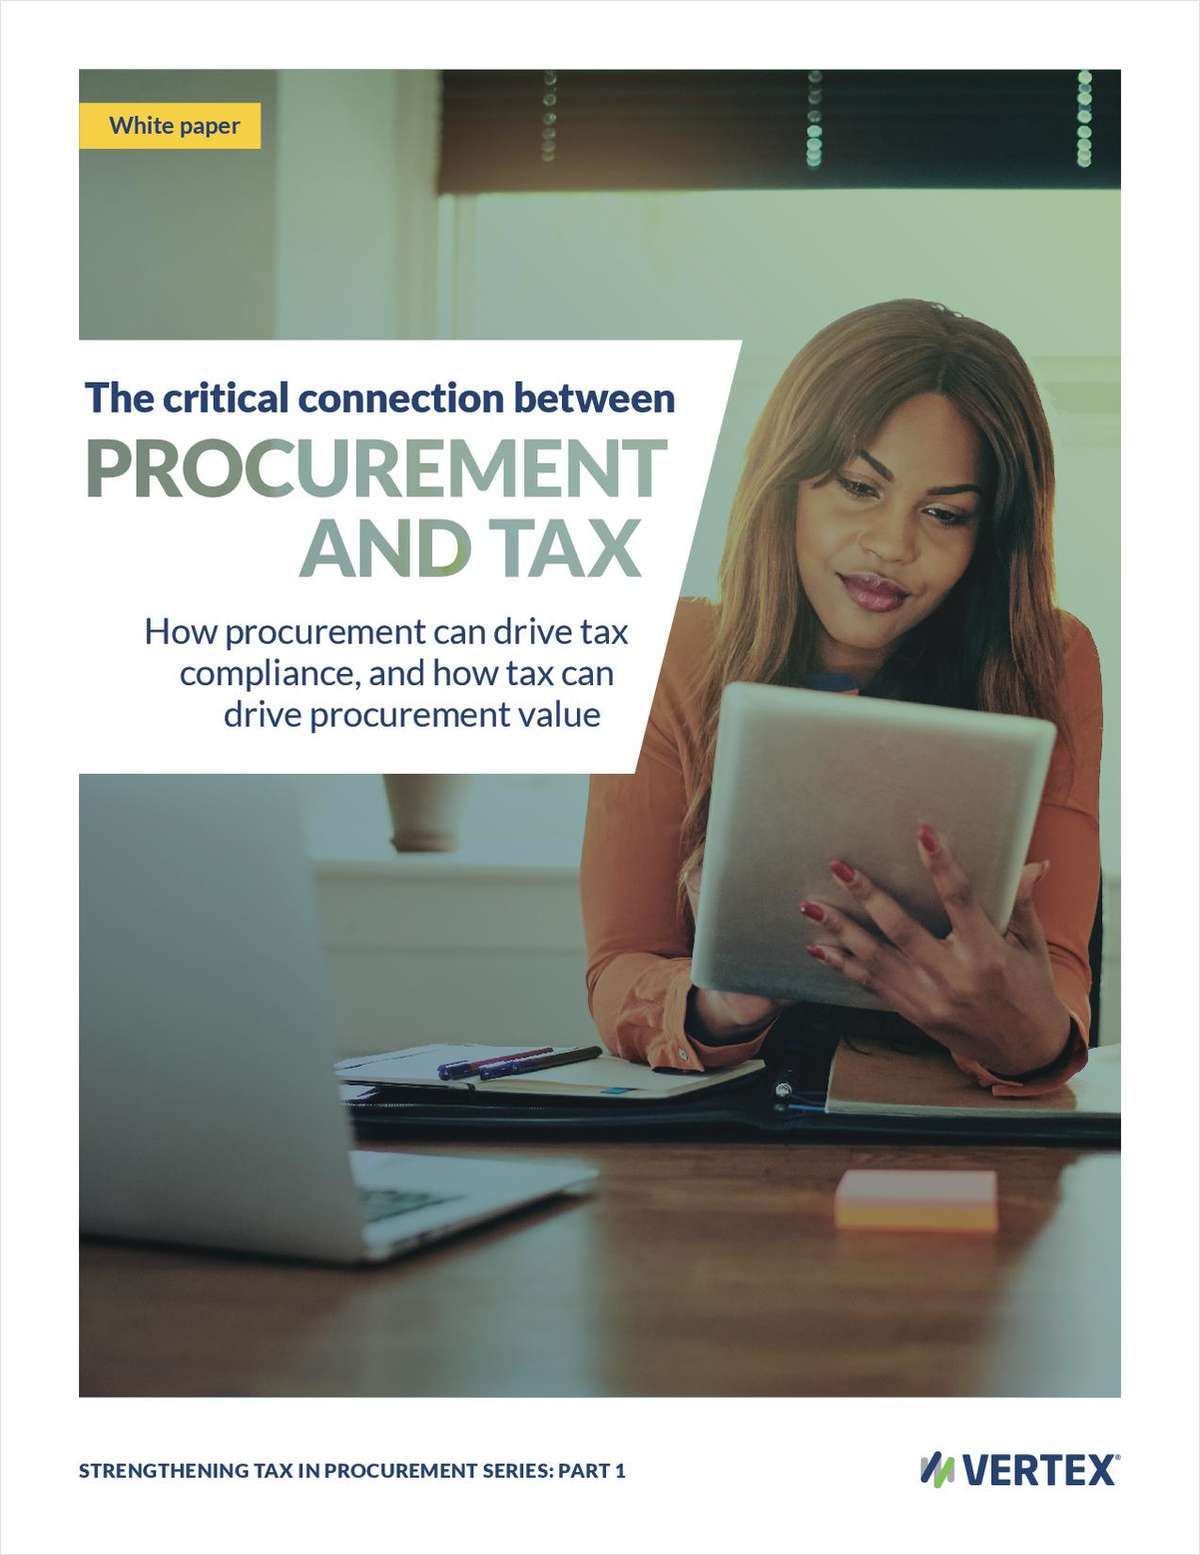 The Critical Connection Between Procurement and Tax